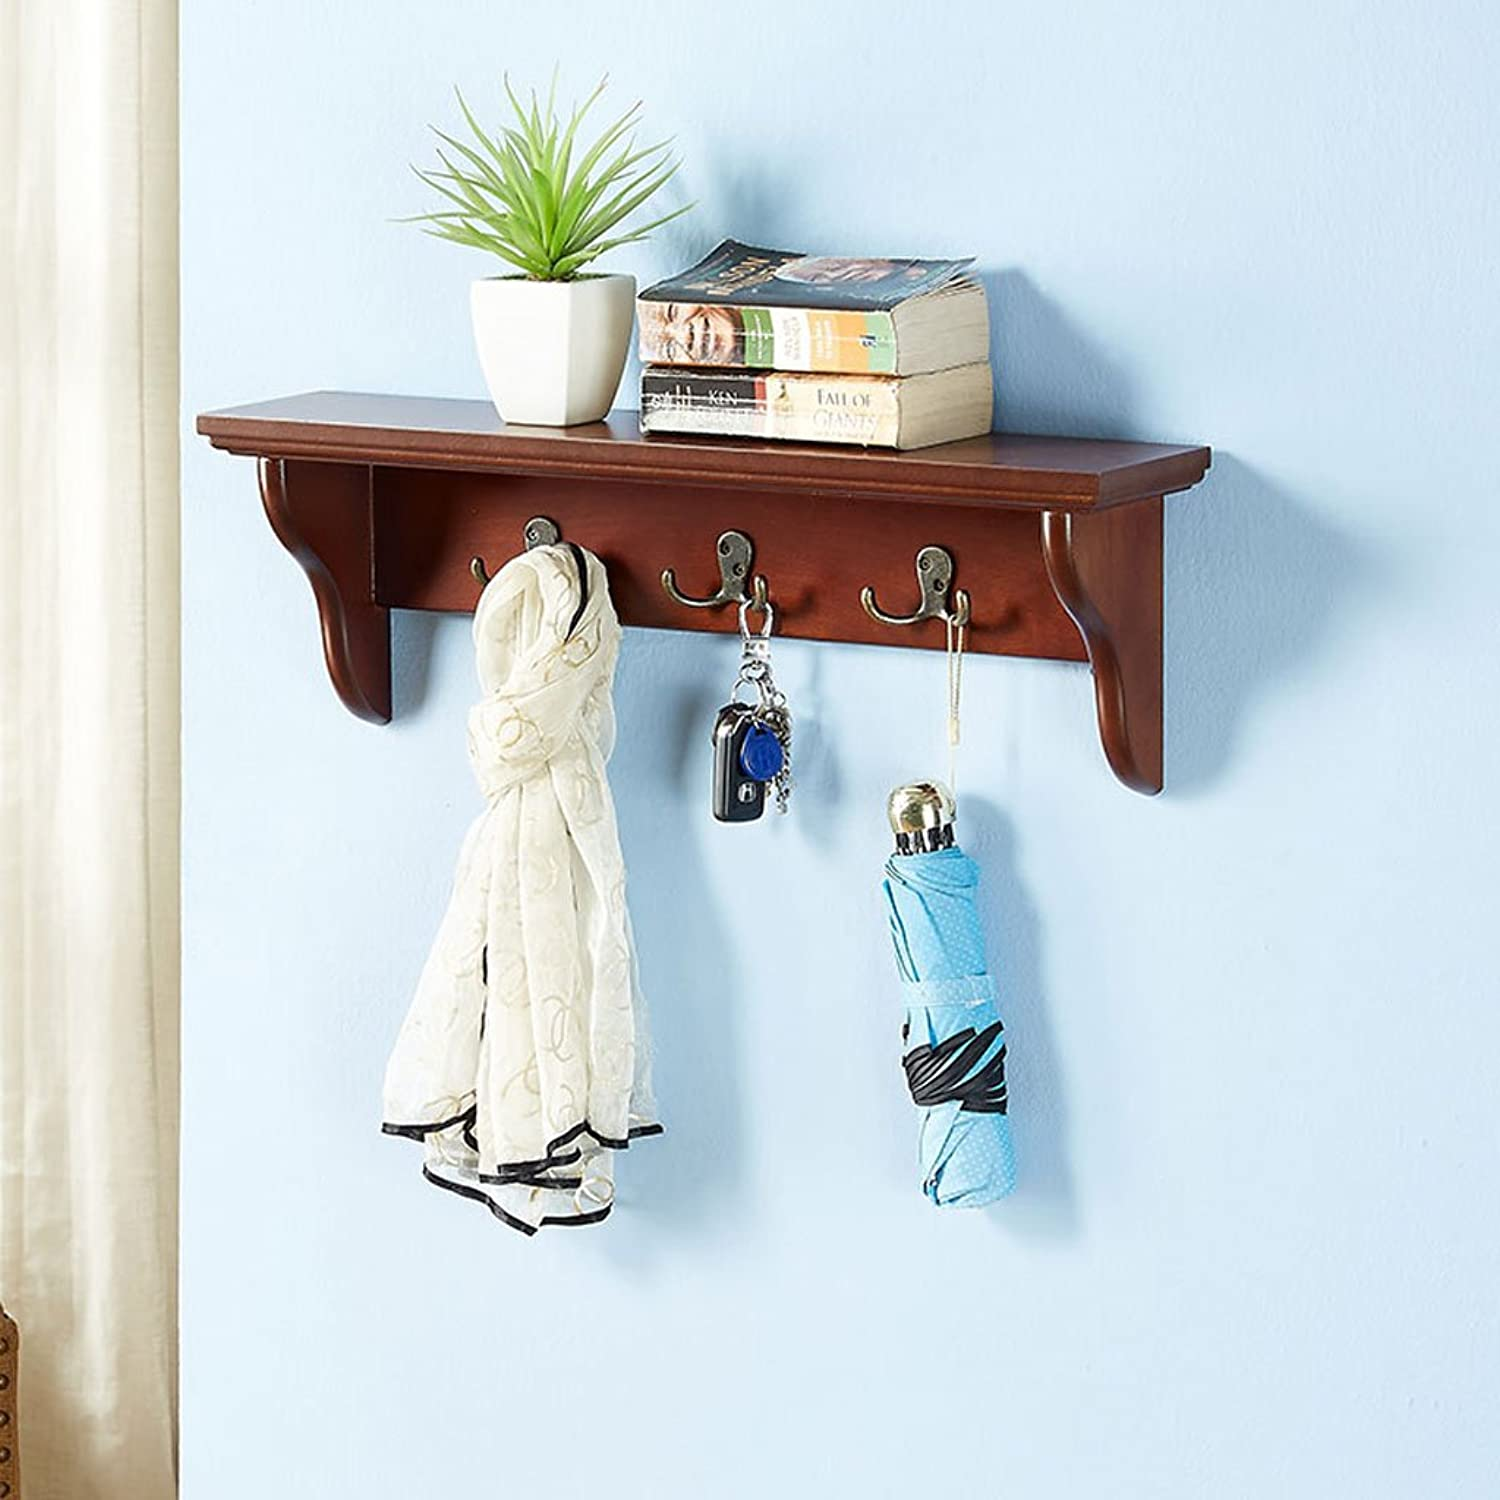 LIAN Wall Mounted Shelf Solid Wood Retro Style Floating Wall Shelf with Coat Rack 23.6  5.1 inch (color   B)